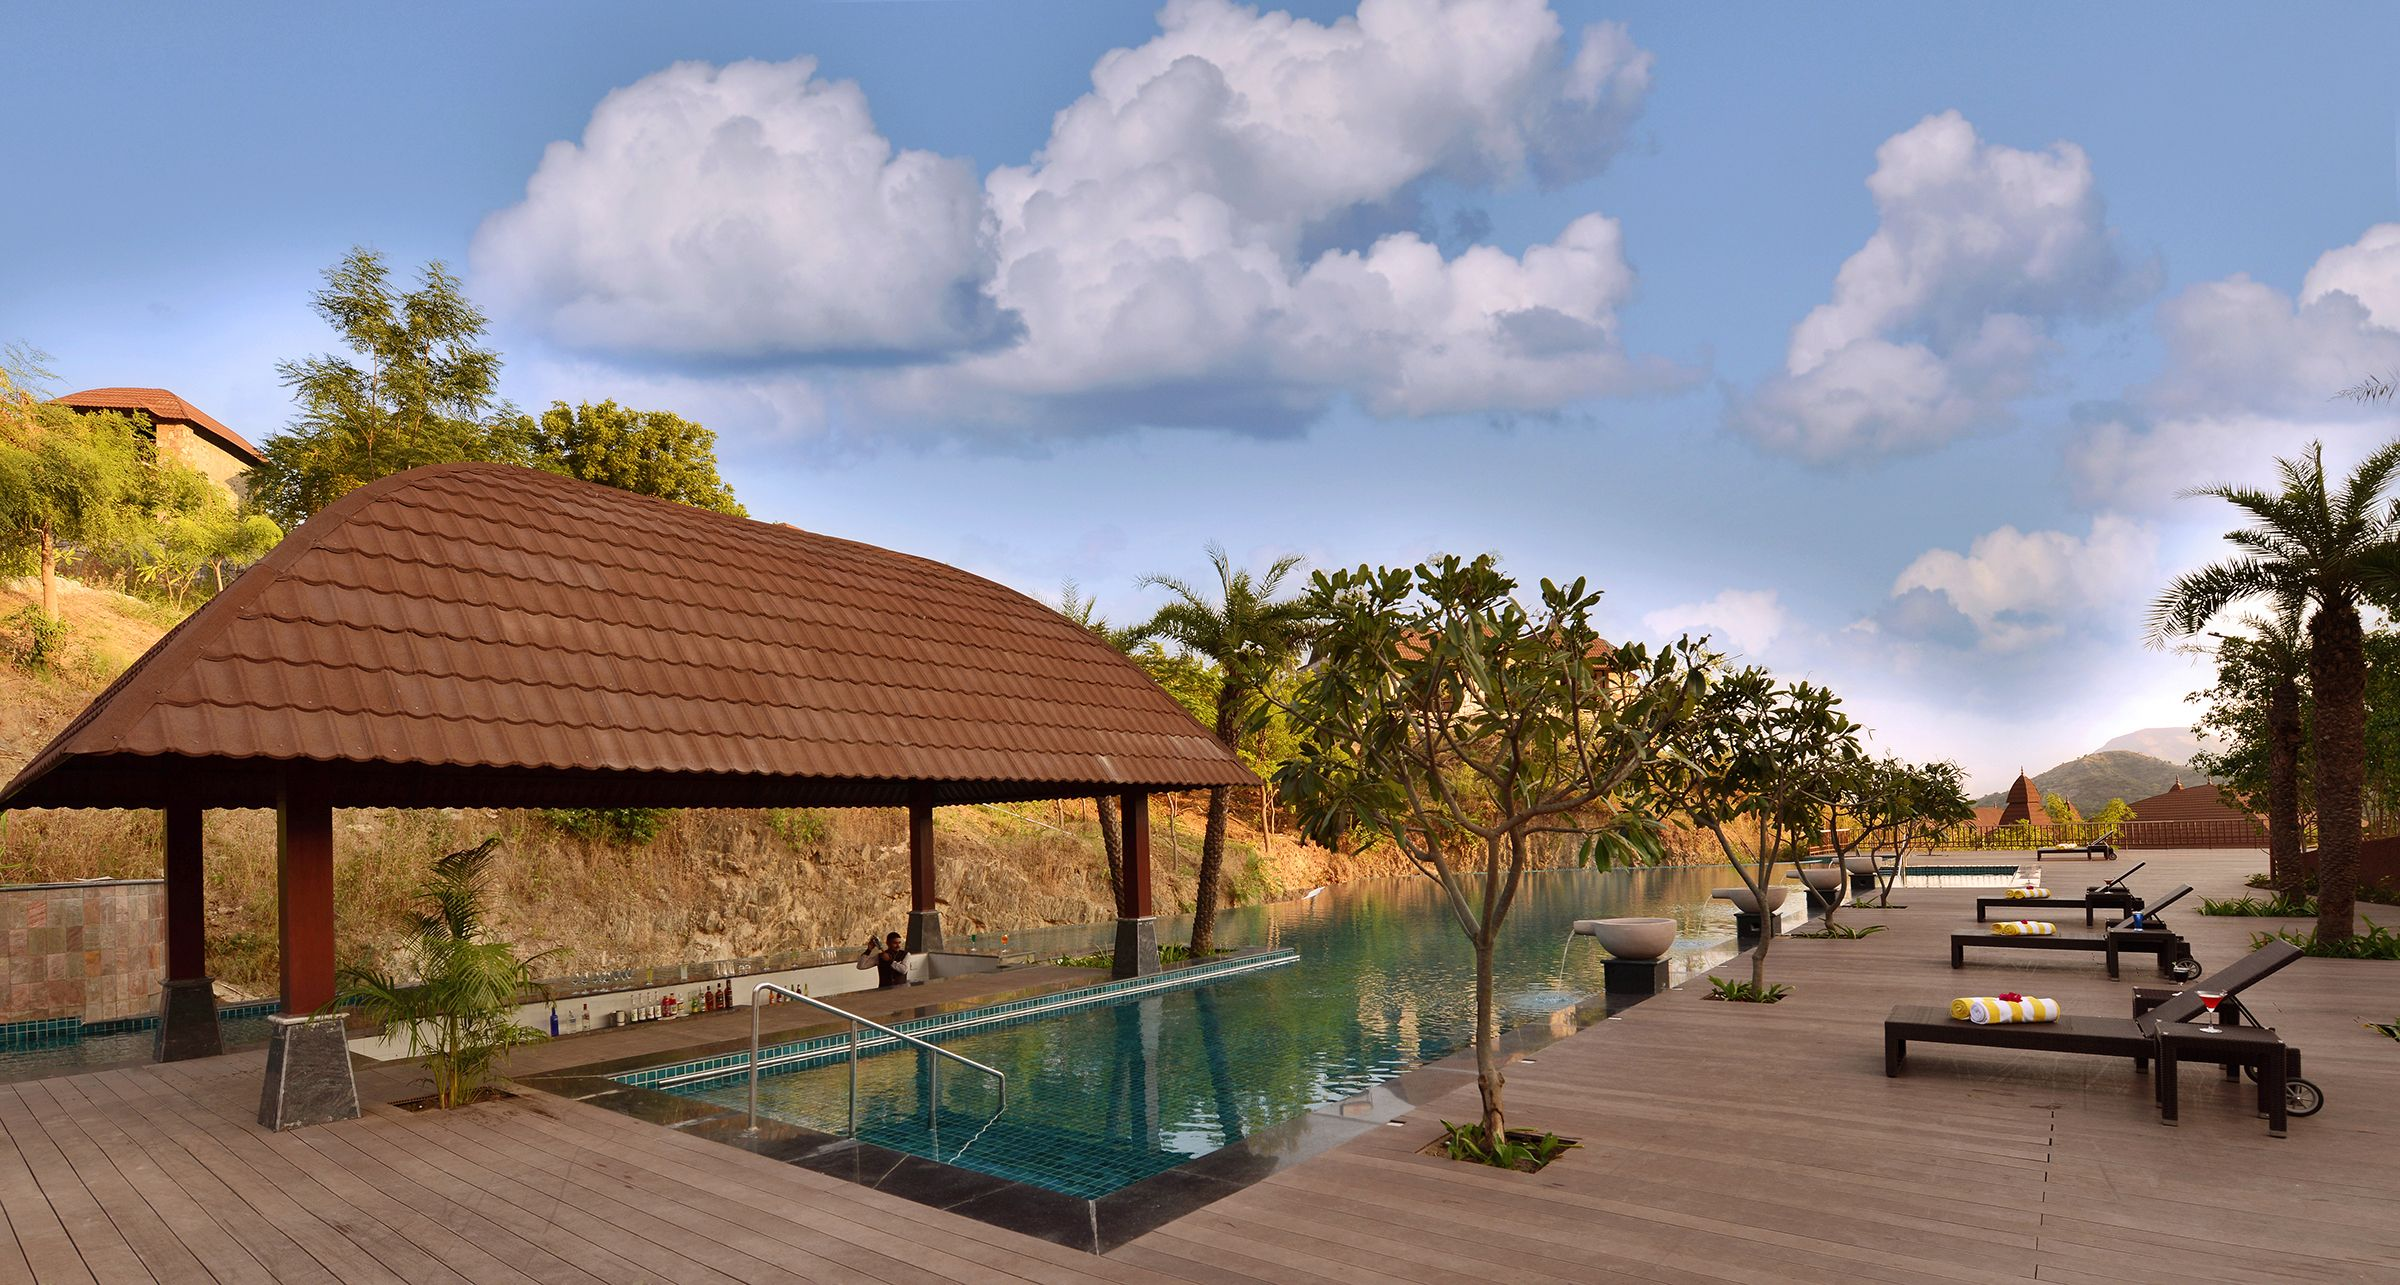 Mornings Glow With Attractive Calm And Serenity At Ananta Spa